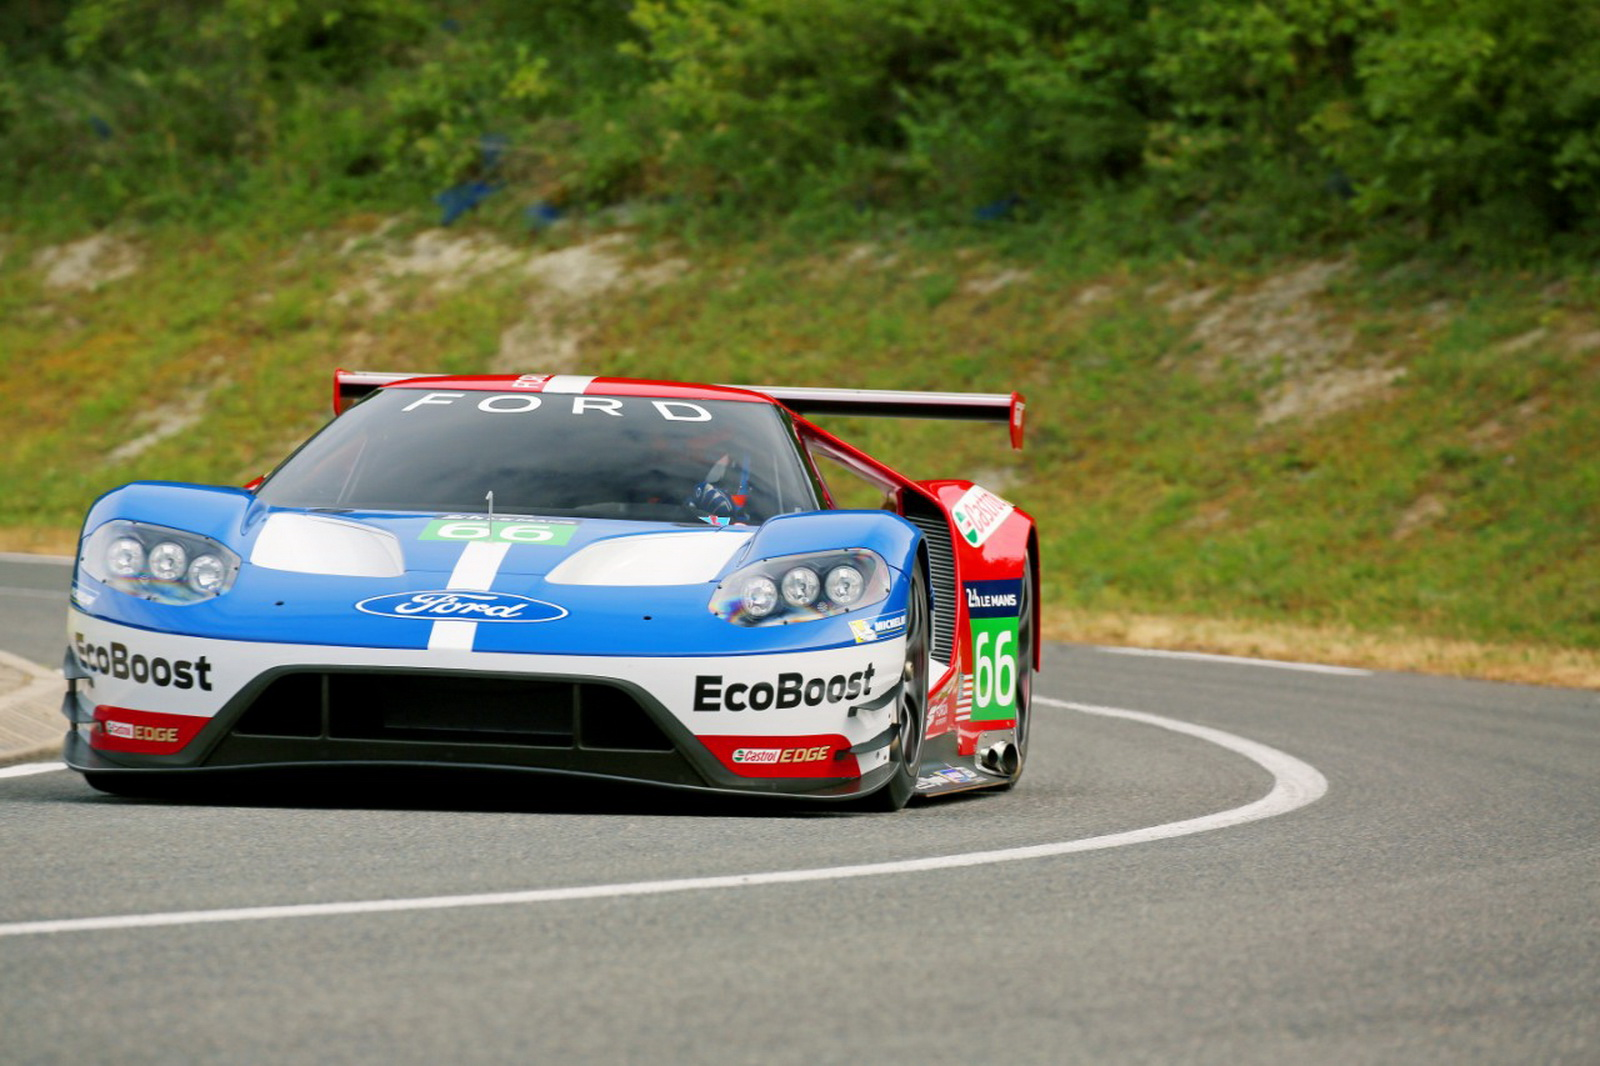 Ford Gt Racer To Debut At Of Daytona Four Cars Heading To Le